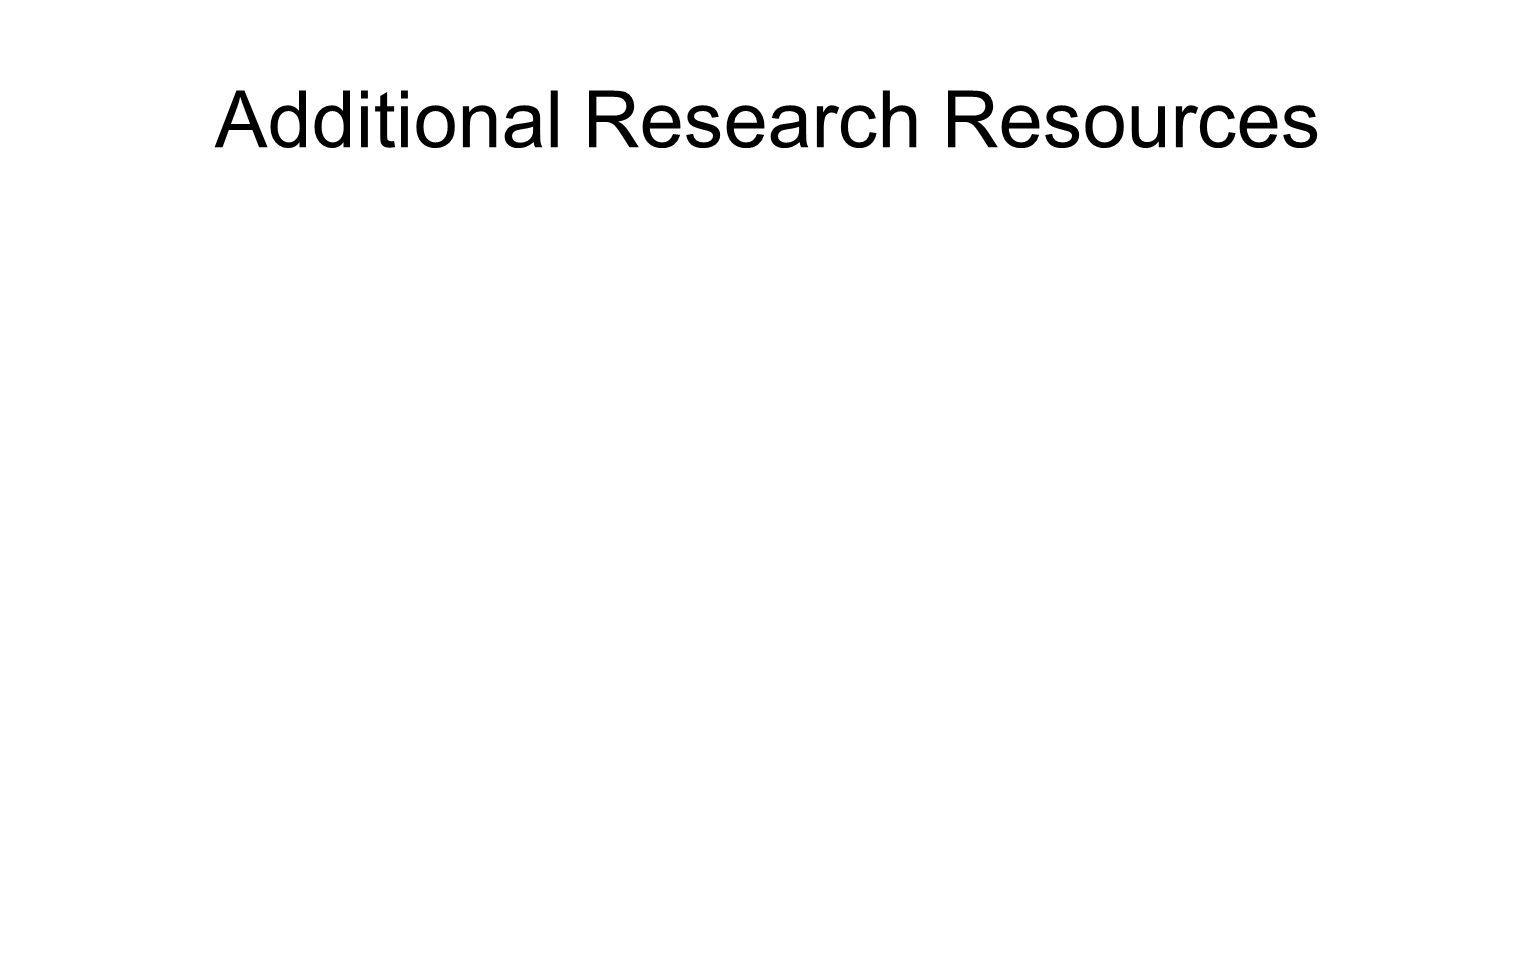 Additional Research Resources